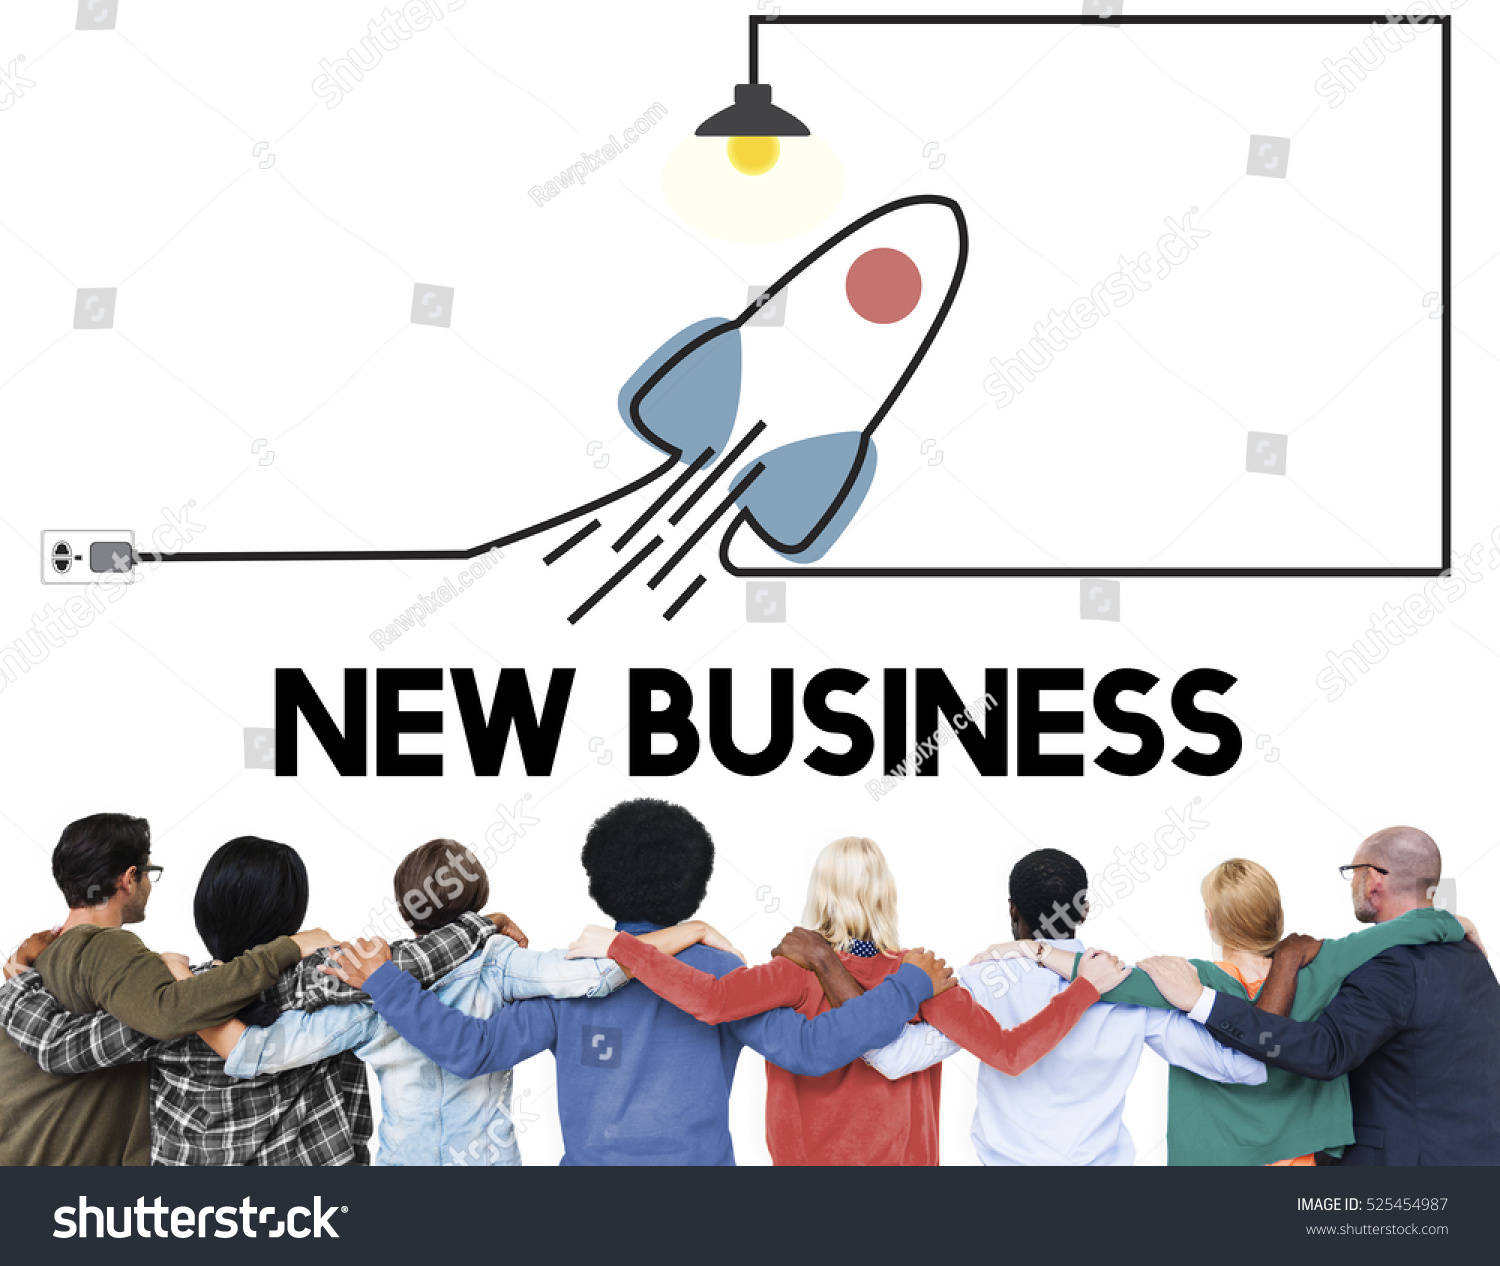 entrepreneurship new business A key question that all would-be entrepreneurs face is finding the business opportunity that is right for them should the new startup focus on introducing a new product or service based on an unmet n.